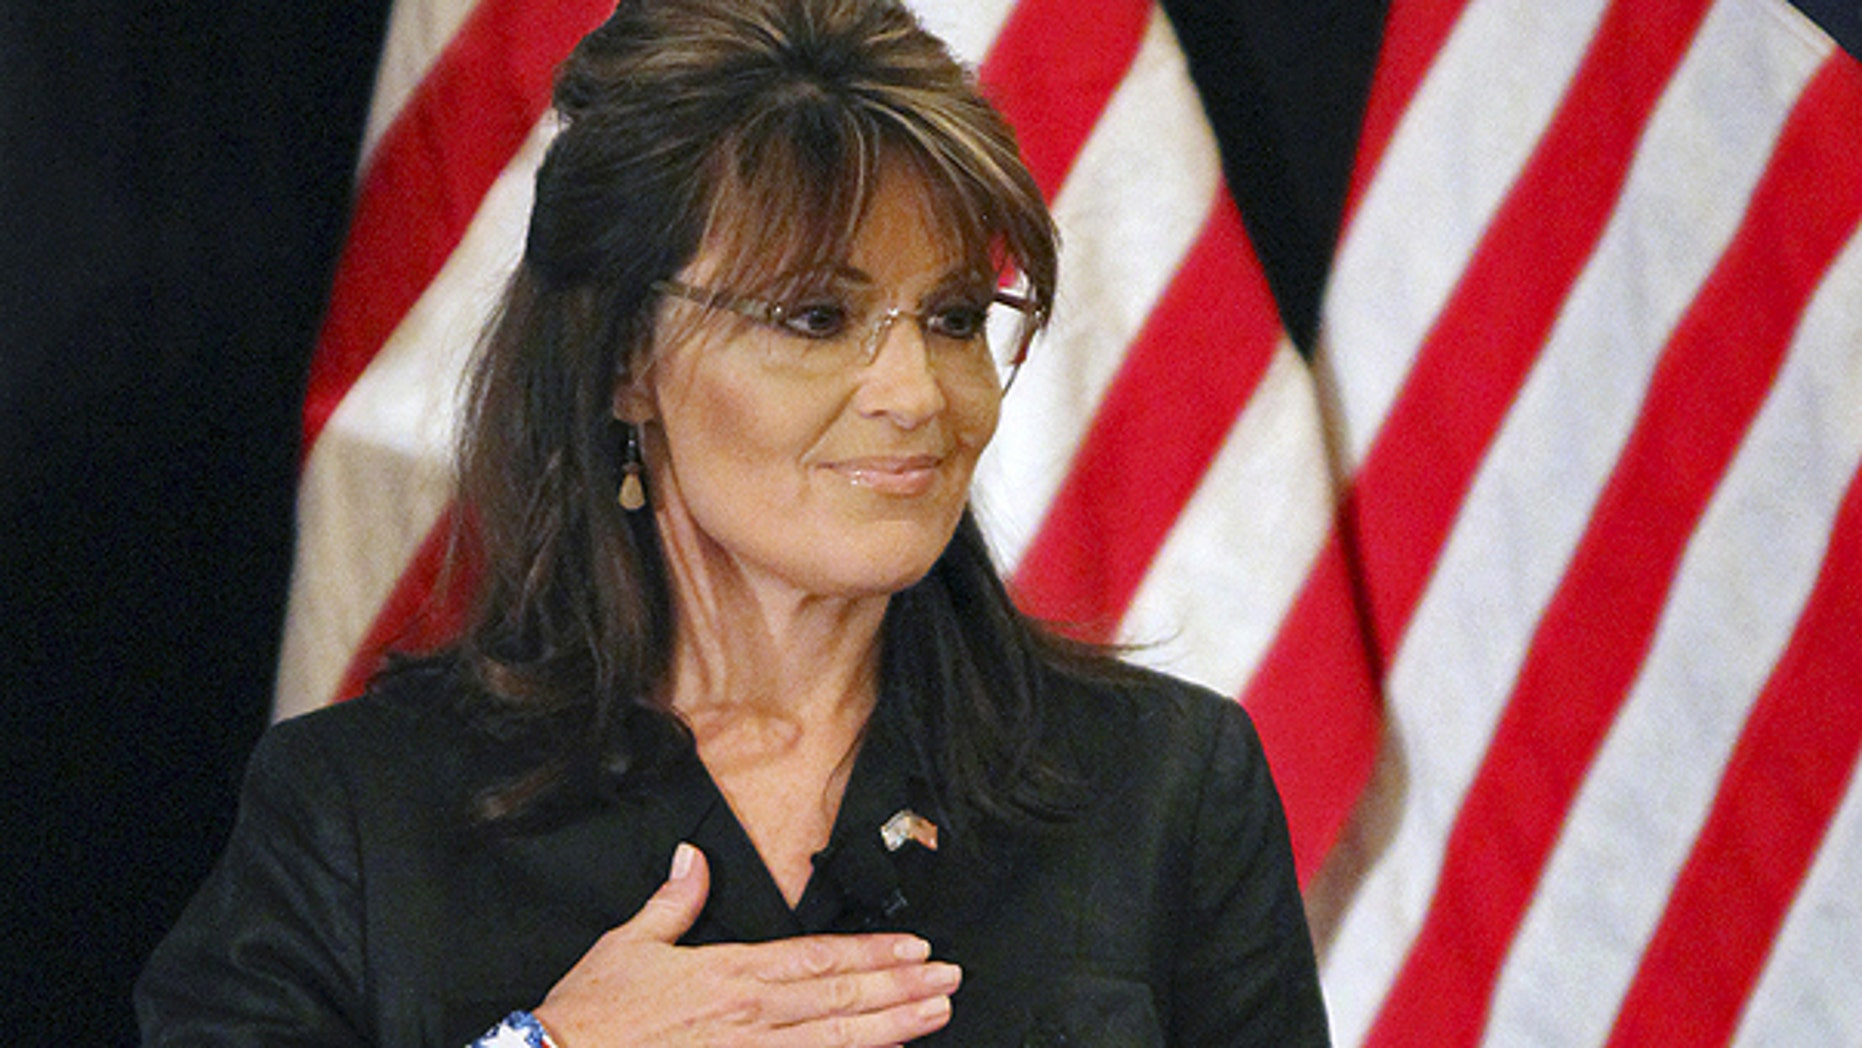 Feb. 17: Former Alaska Gov. Sarah Palin covers her heart during the national anthem as she attends a public appearance at a Long Island Association (LIA) meeting and luncheon in Woodbury, N.Y.